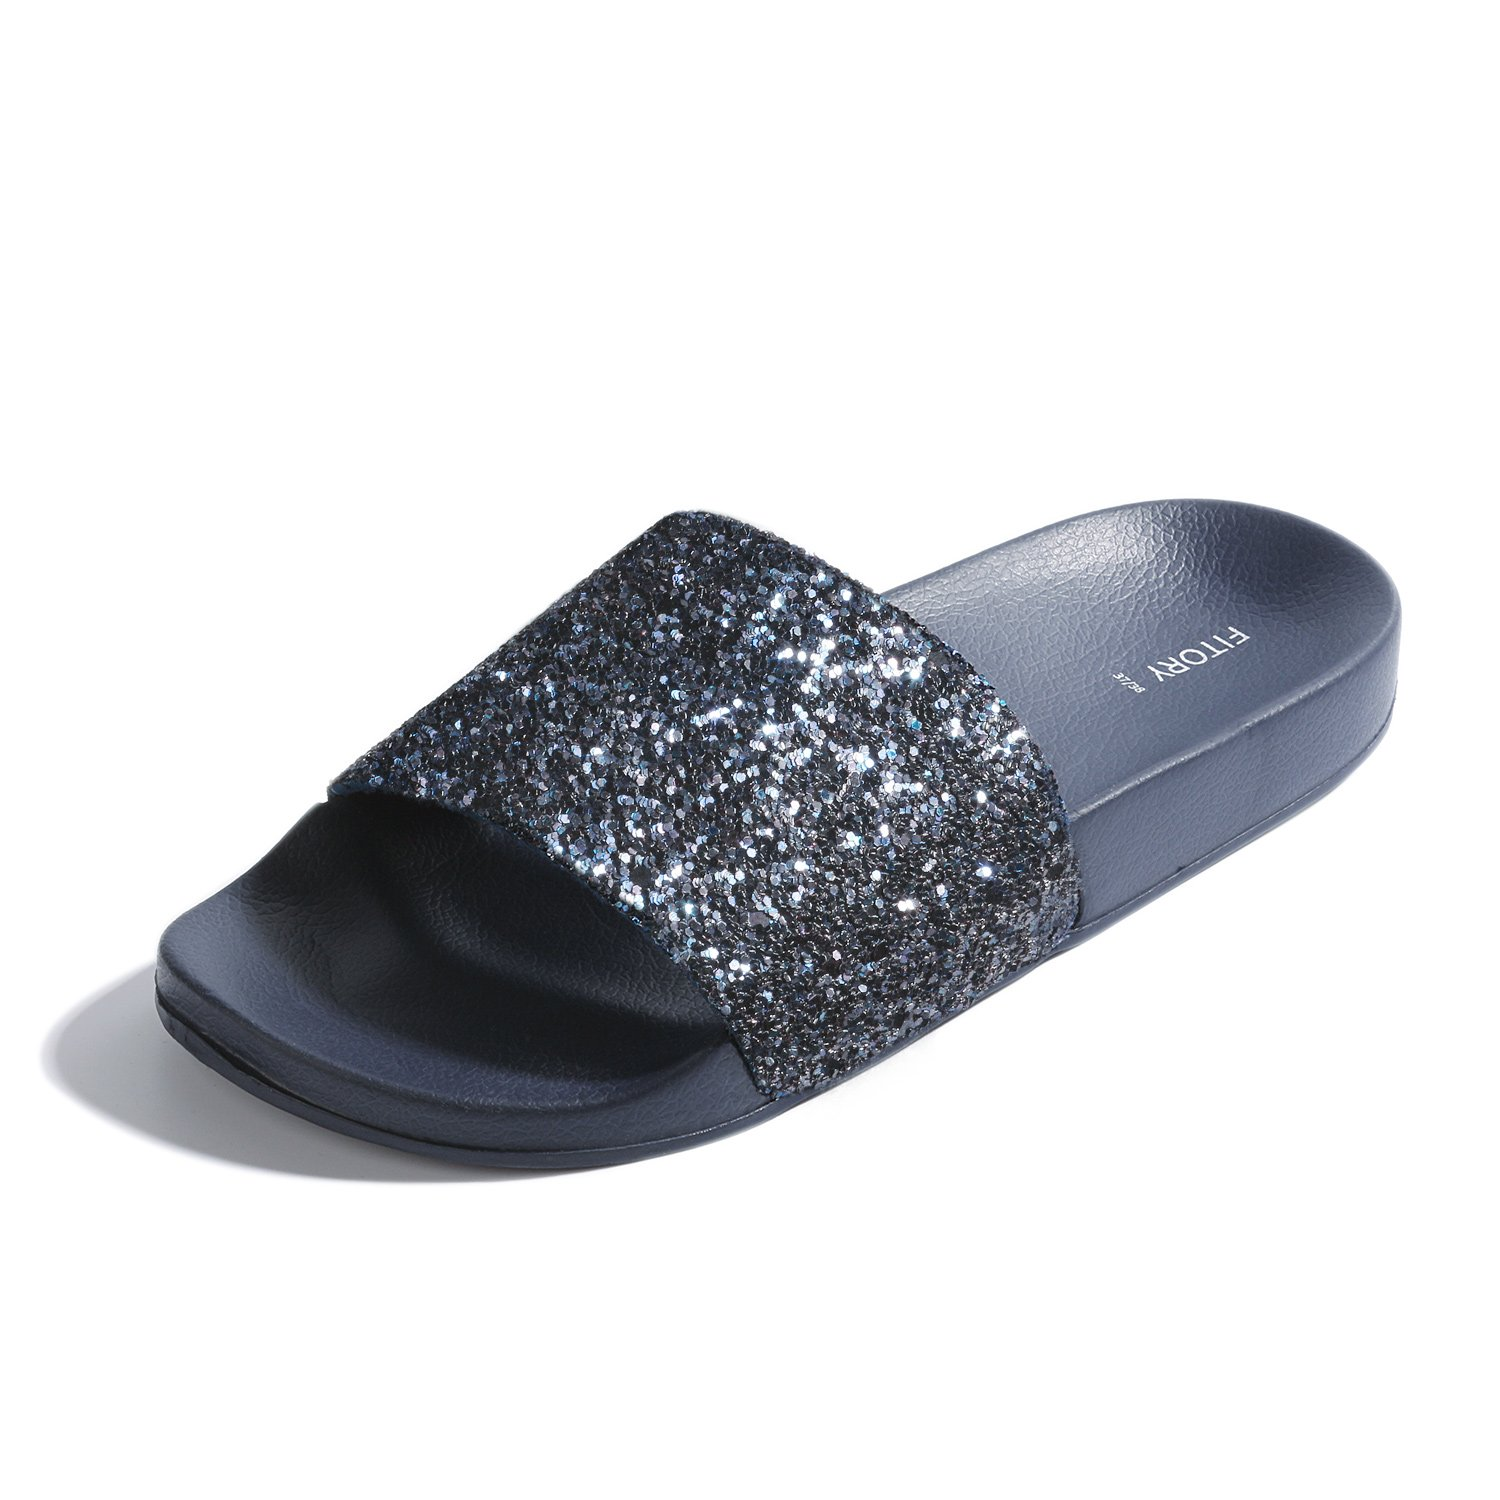 24df05dca FITORY Women Sliders Glitter Sparkly Slippers Summer Flat Sandals Mules for  Ladies Indoor Outdoor Size 3-8  Amazon.co.uk  Shoes   Bags